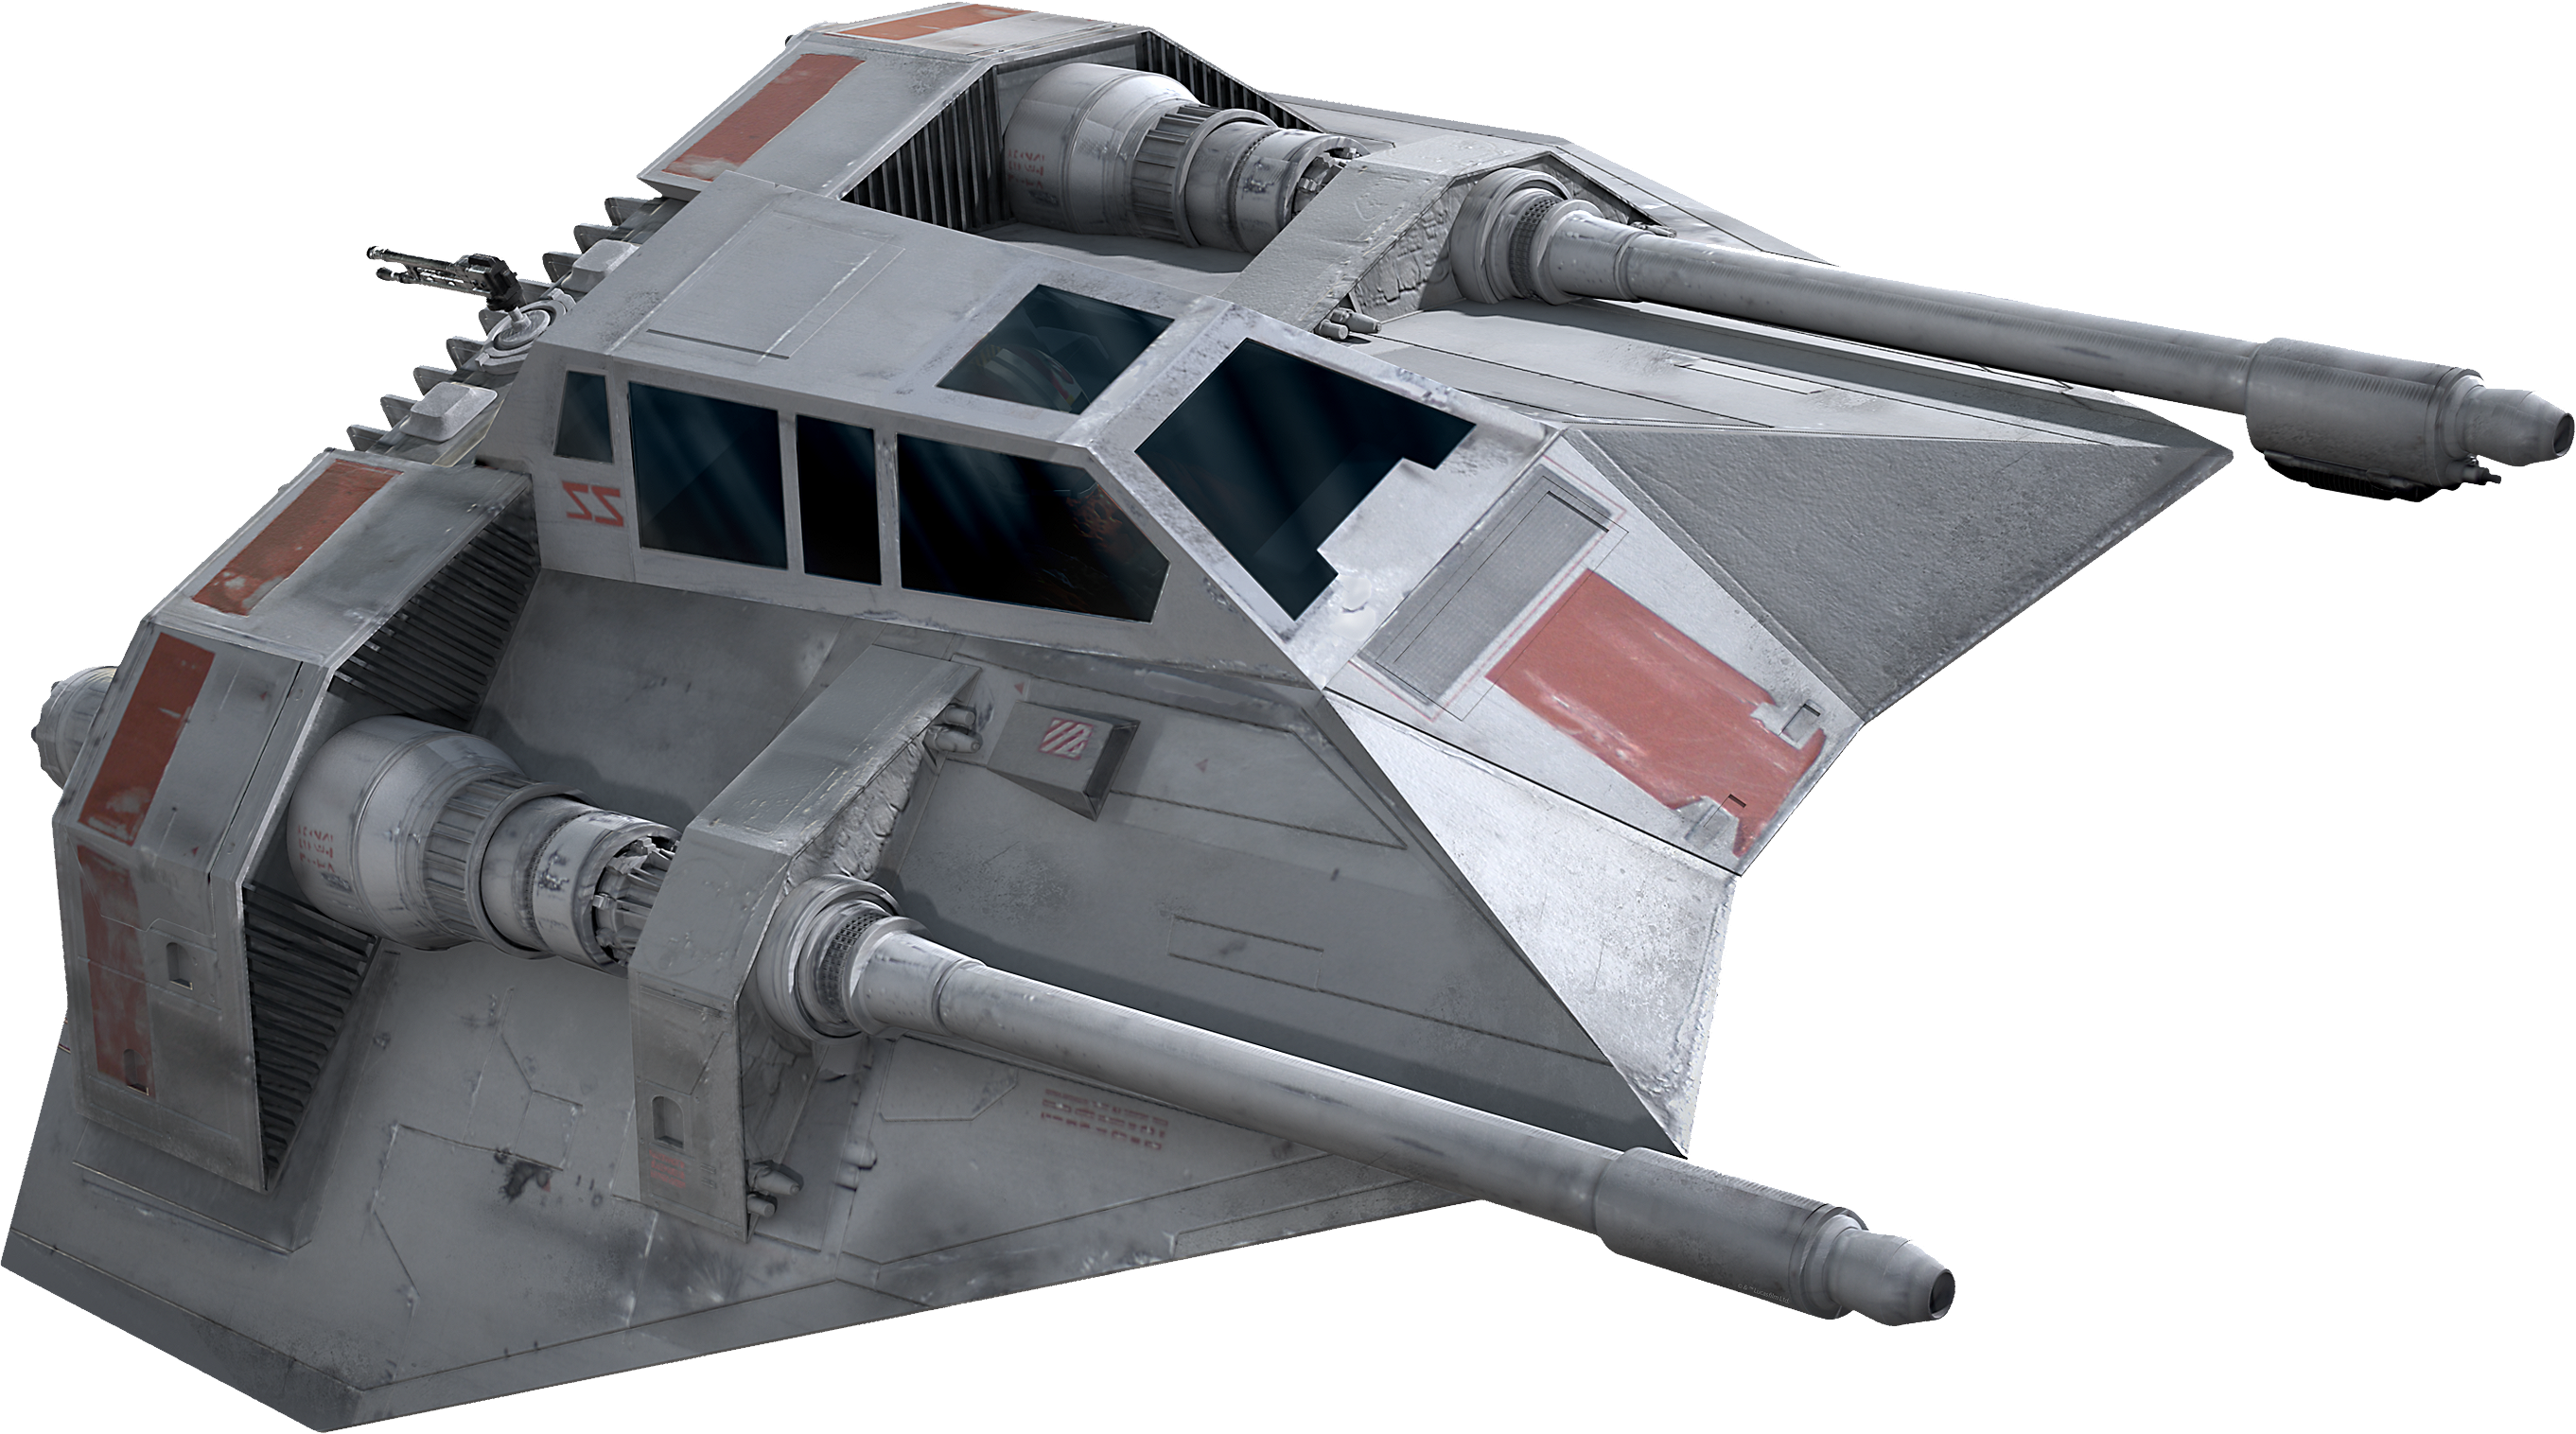 Download Star Wars Png Image For Free Search more hd transparent star wars image on kindpng. download star wars png image for free